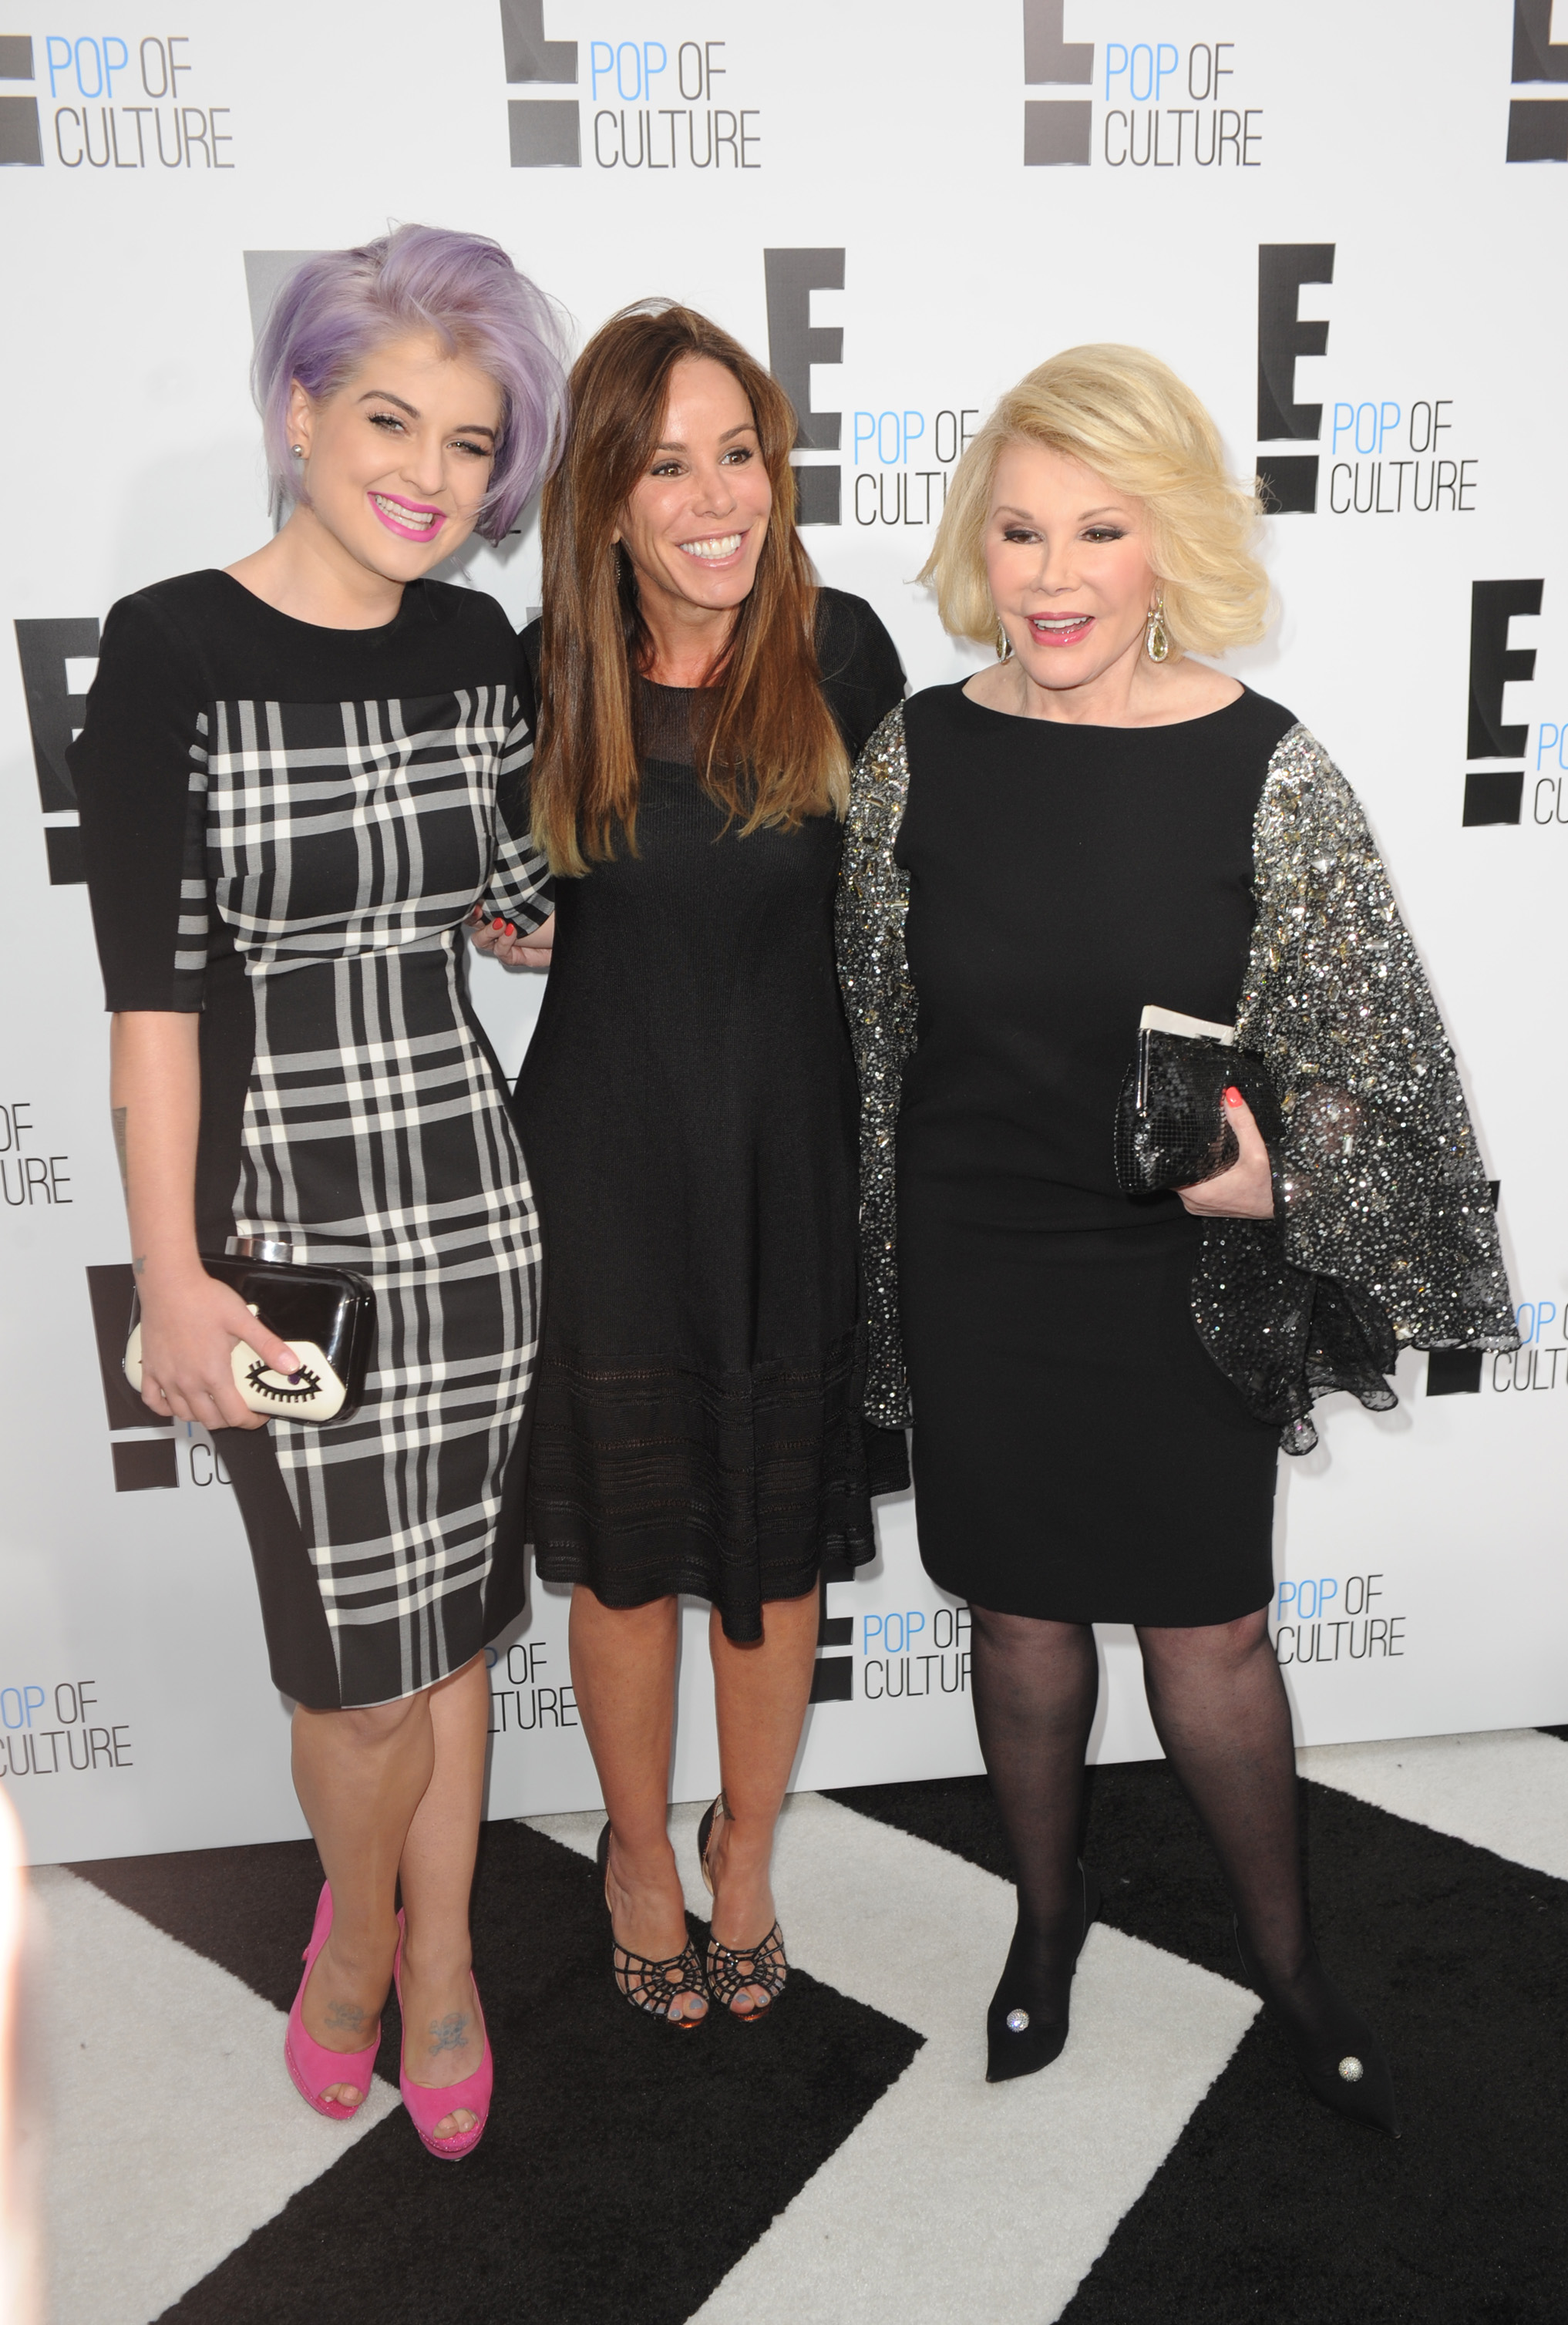 Rivers, pictured with Kelly Osbourne and daughter Melissa in 2012, became best-known to younger generations for hosting E!'s red carpet pre-awards show for the Oscars.